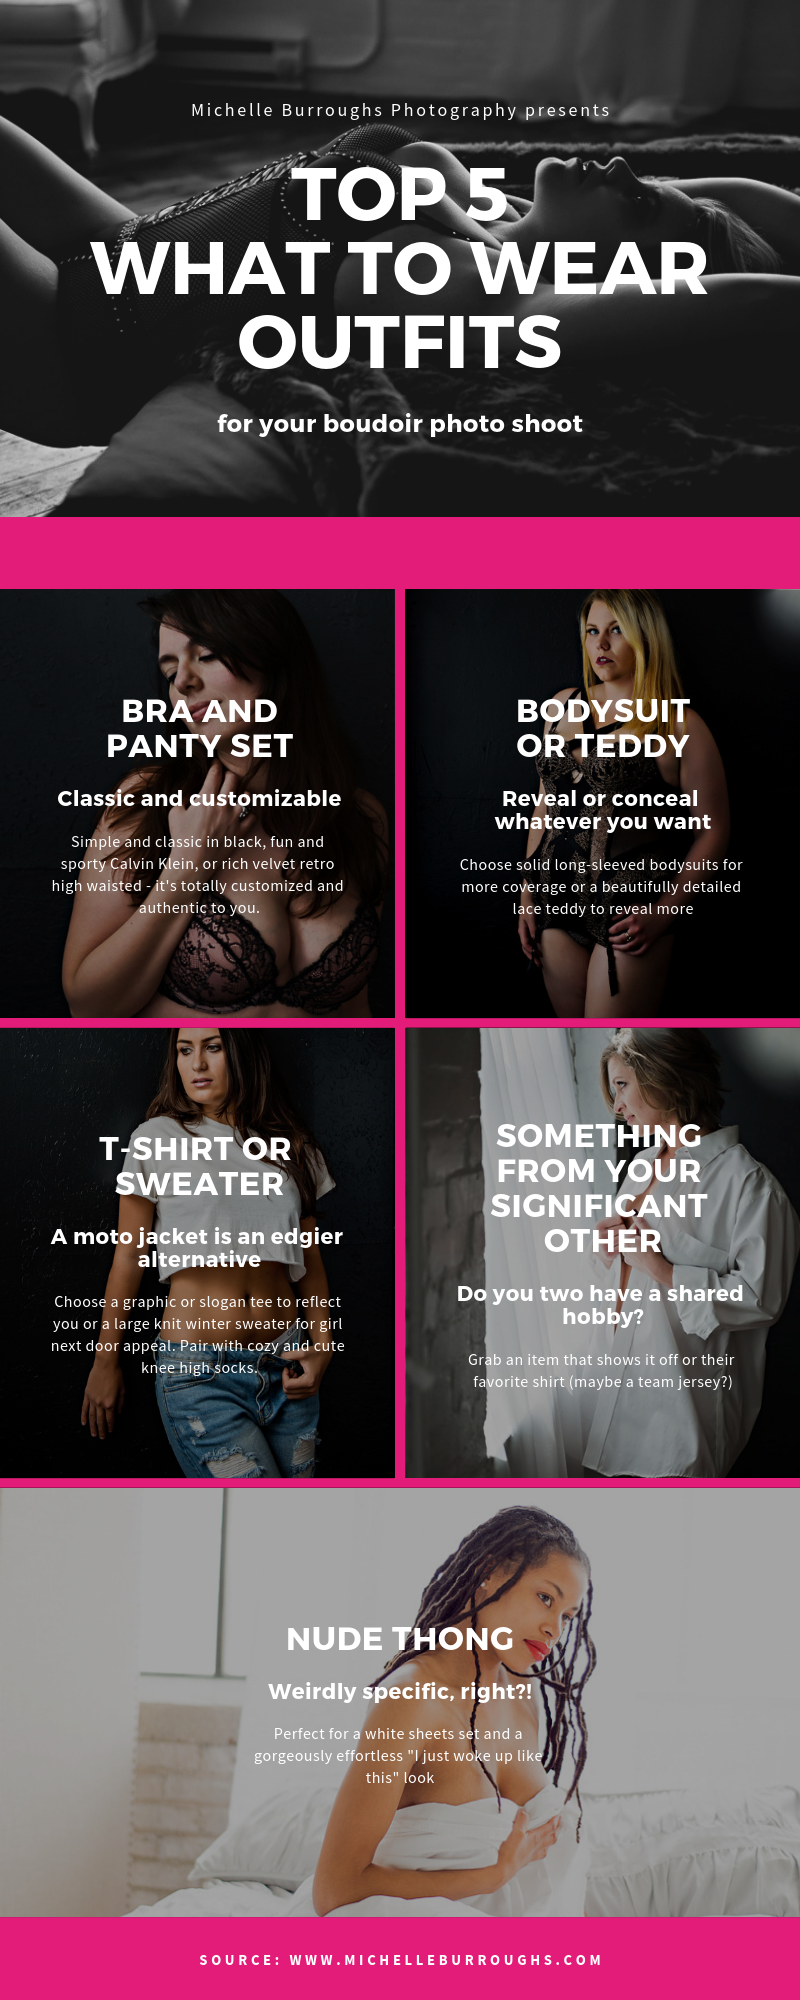 My Top 5 What to Wear Suggestions for Your Boudoir Photo Shoot by Michelle Burroughs Photography